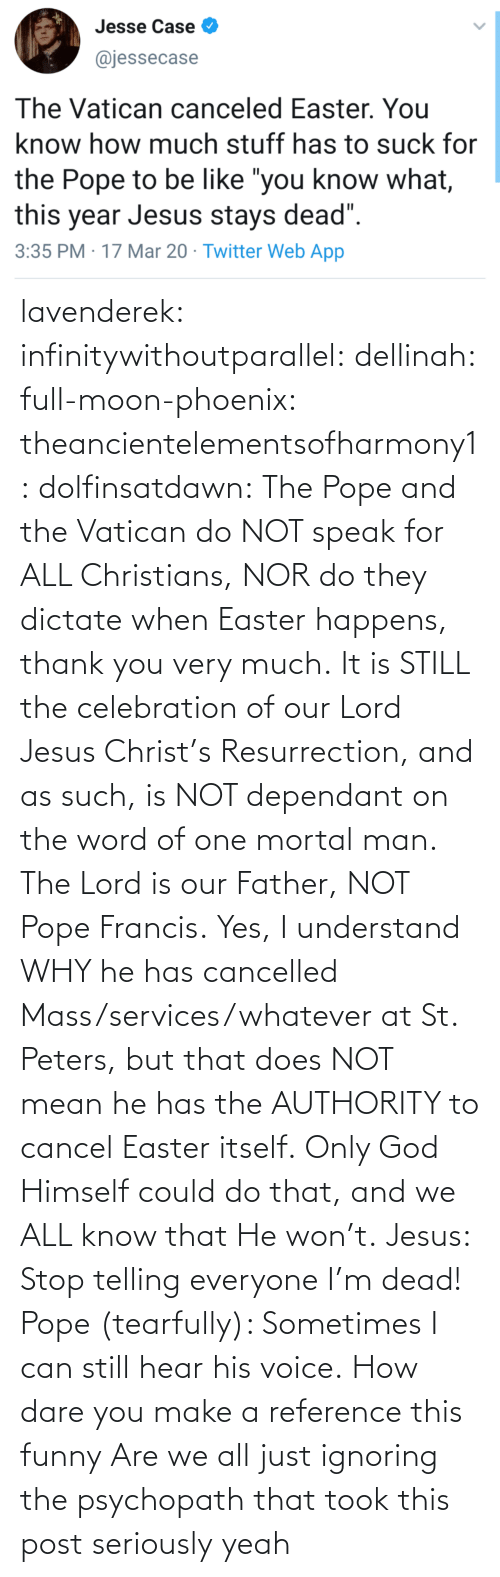 At-St, Easter, and Funny: lavenderek: infinitywithoutparallel:  dellinah:  full-moon-phoenix:   theancientelementsofharmony1:  dolfinsatdawn:    The Pope and the Vatican do NOT speak for ALL Christians, NOR do they dictate when Easter happens, thank you very much. It is STILL the celebration of our Lord Jesus Christ's Resurrection, and as such, is NOT dependant on the word of one mortal man. The Lord is our Father, NOT Pope Francis. Yes, I understand WHY he has cancelled Mass/services/whatever at St. Peters, but that does NOT mean he has the AUTHORITY to cancel Easter itself. Only God Himself could do that, and we ALL know that He won't.    Jesus: Stop telling everyone I'm dead! Pope (tearfully): Sometimes I can still hear his voice.    How dare you make a reference this funny    Are we all just ignoring the psychopath that took this post seriously     yeah